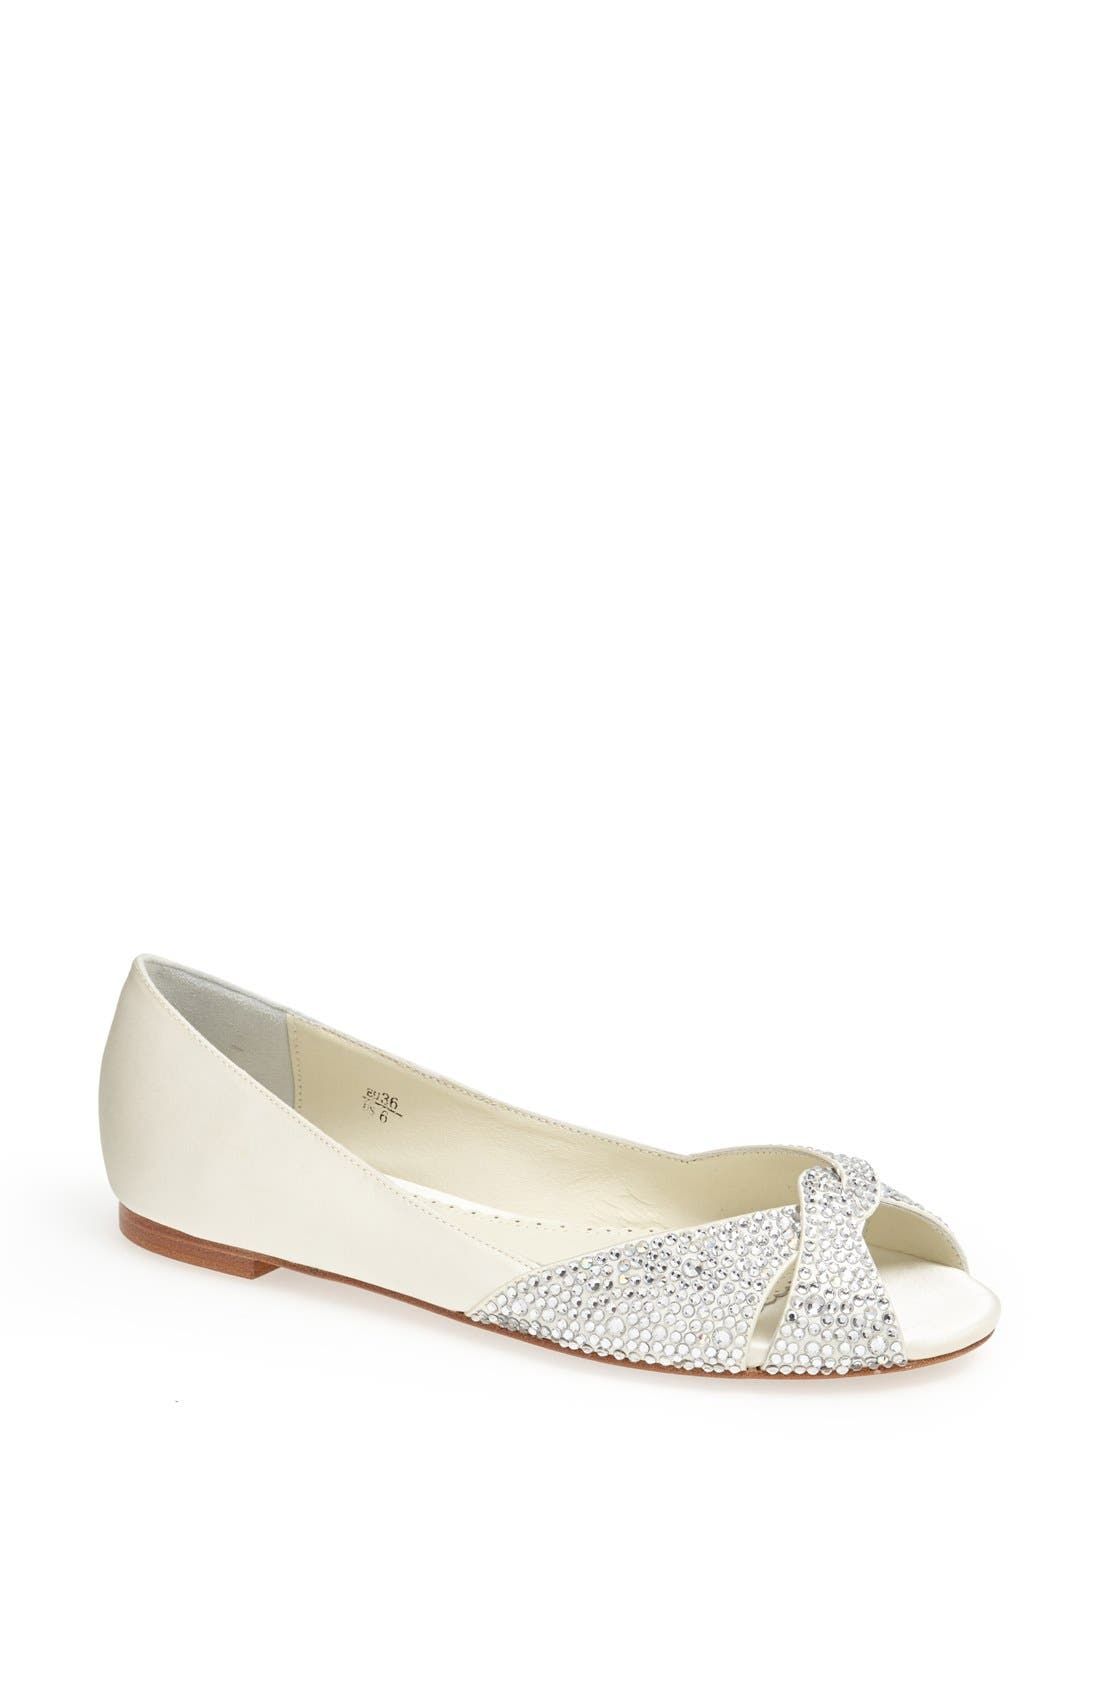 'Andie' Crystal Embellished Peep Toe Flat,                         Main,                         color, Ivory